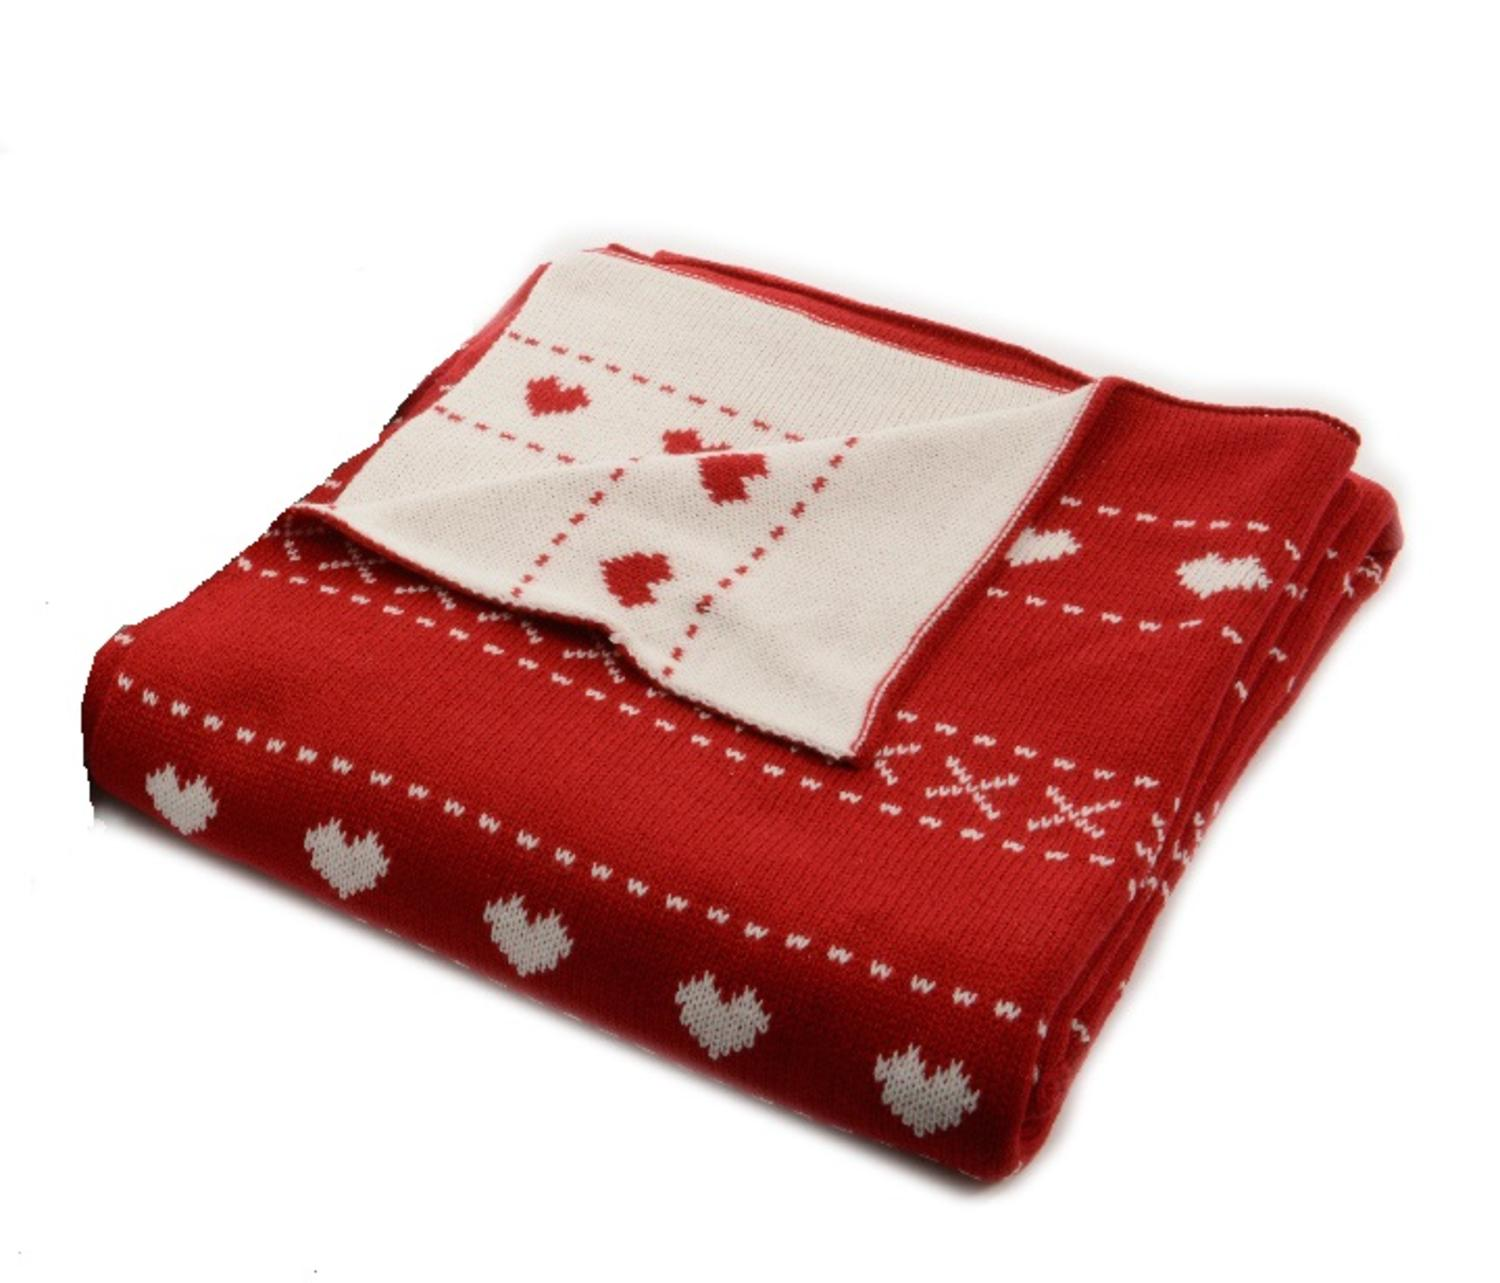 alpine chic red with white heart pattern knitted christmas throw blanket 50 x 60